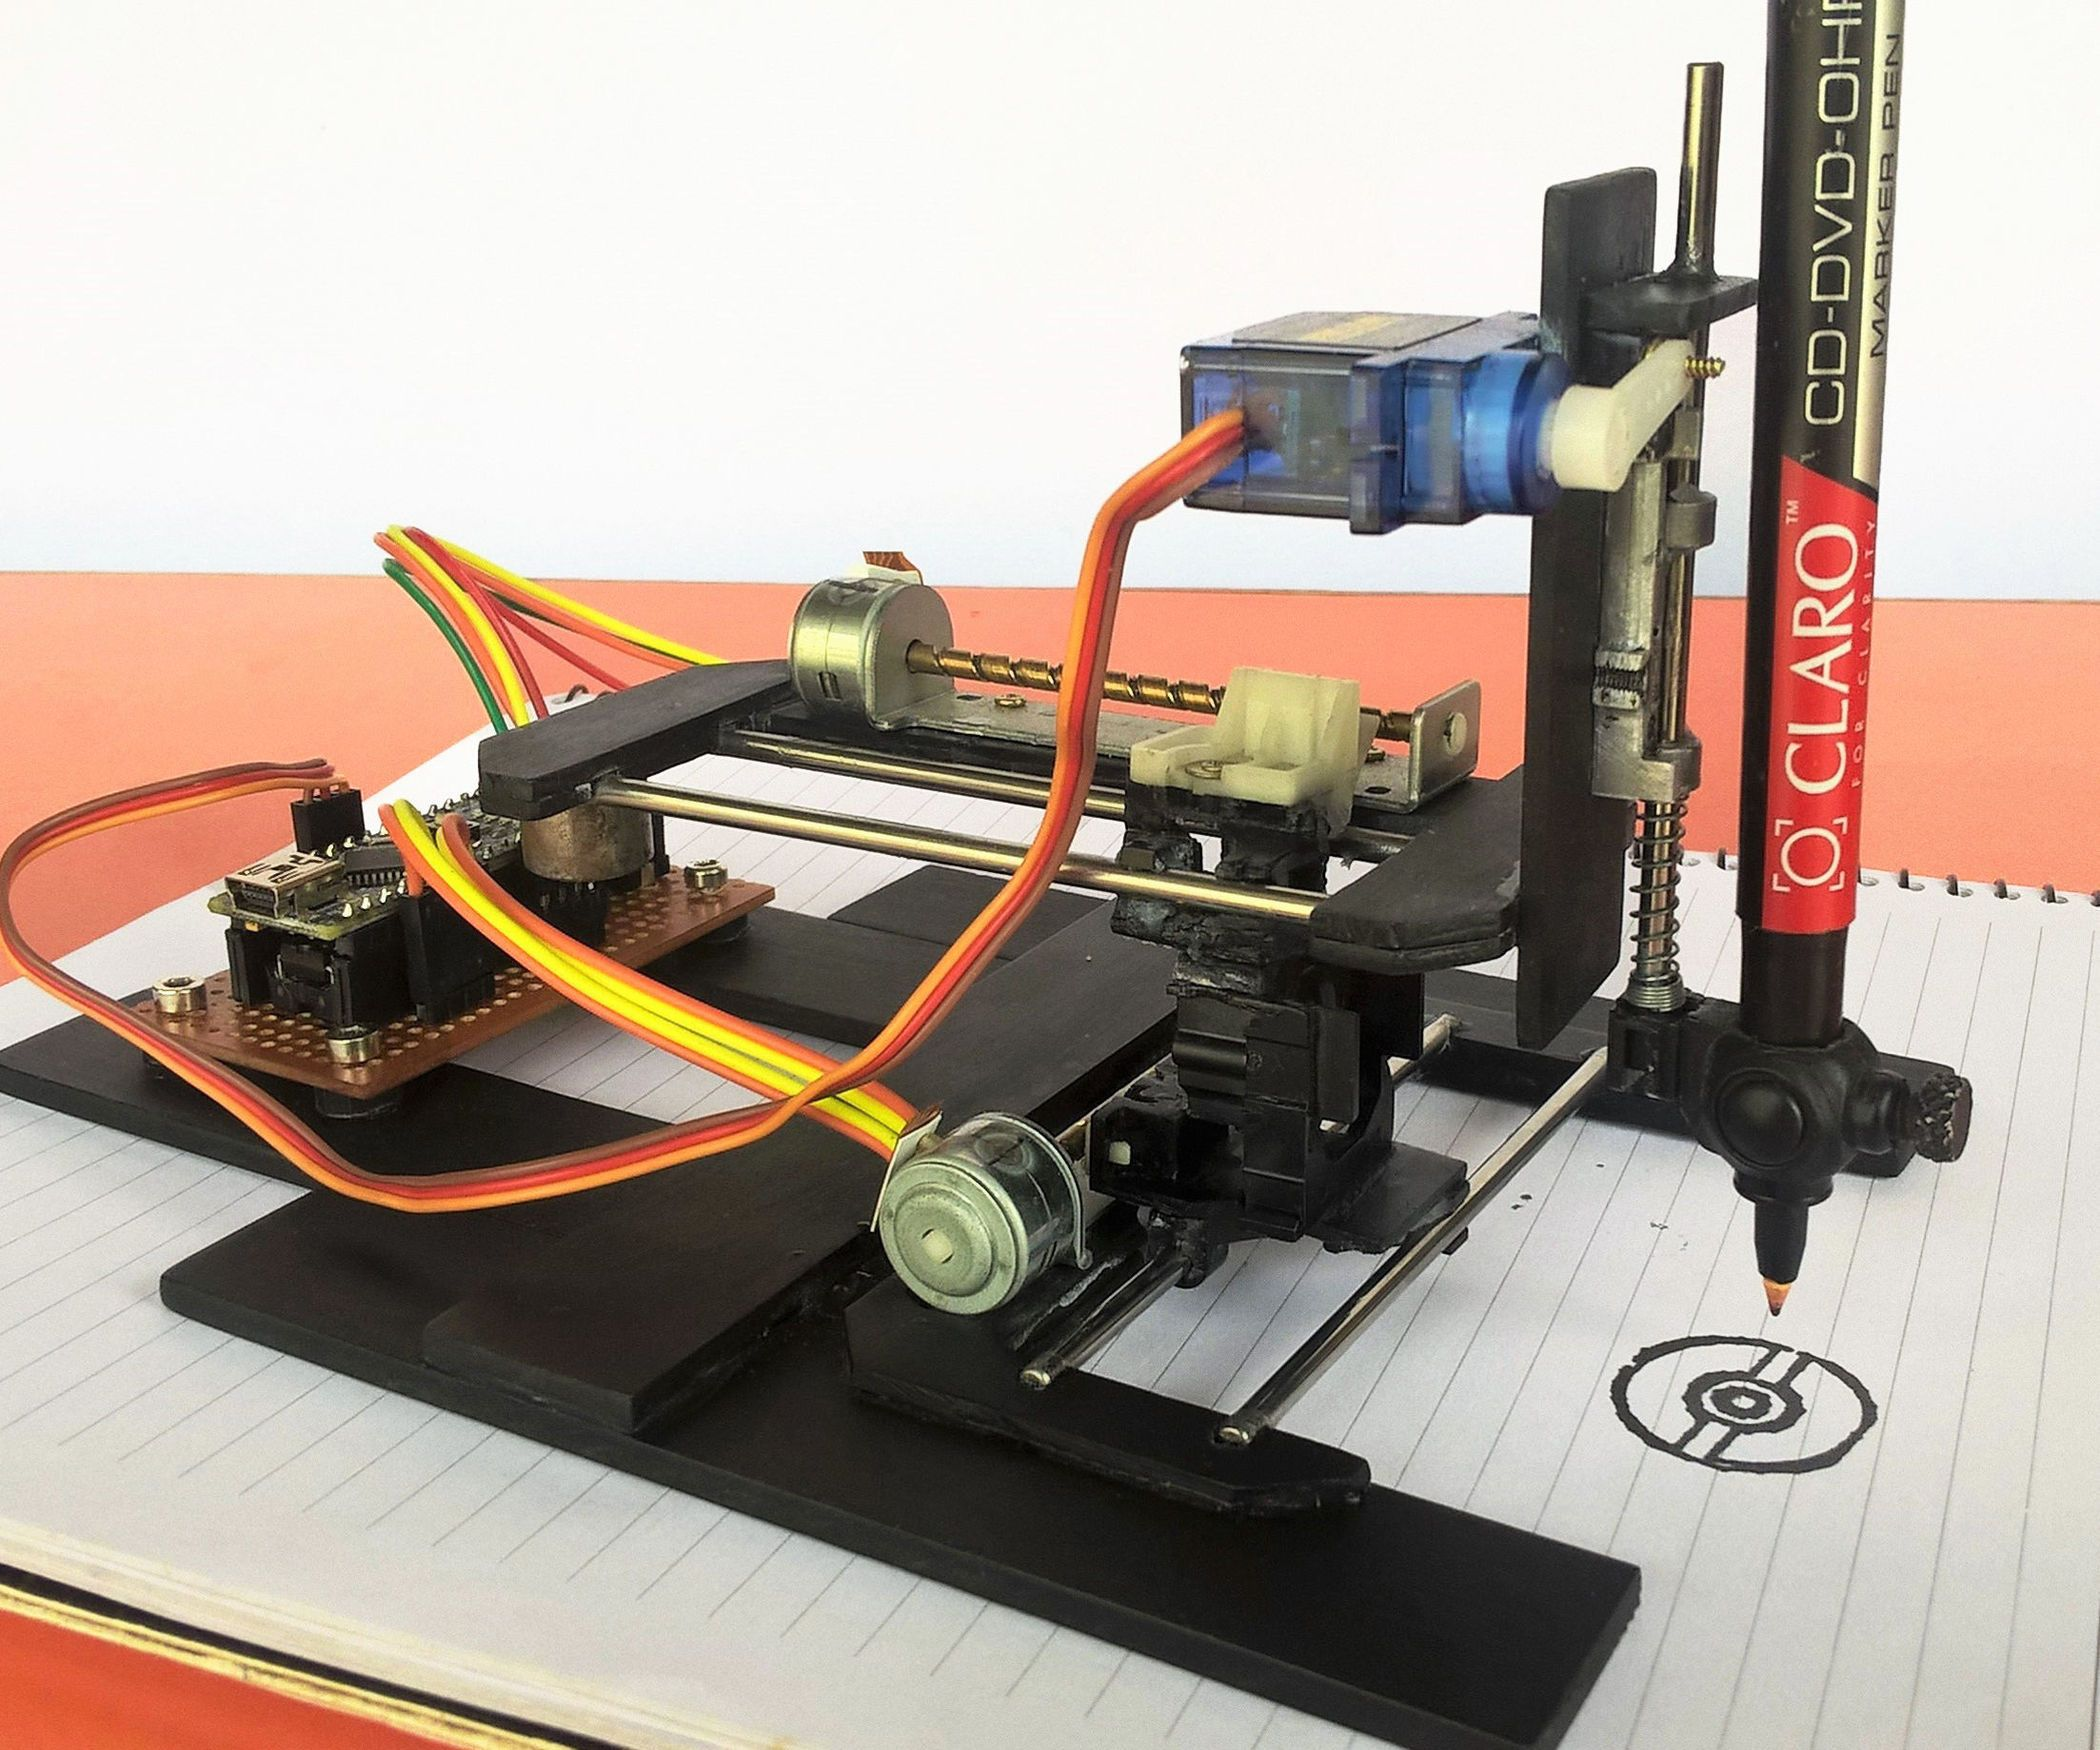 Diy Arduino Cnc Drawing Machine Pinterest Remote Control Drone Pcb Pcba Circuit Board For Rc Dronerc Hello Guys In This Instructable Im Going To Show You How Make An Plotter From Old Dvd Writers Is Amazing